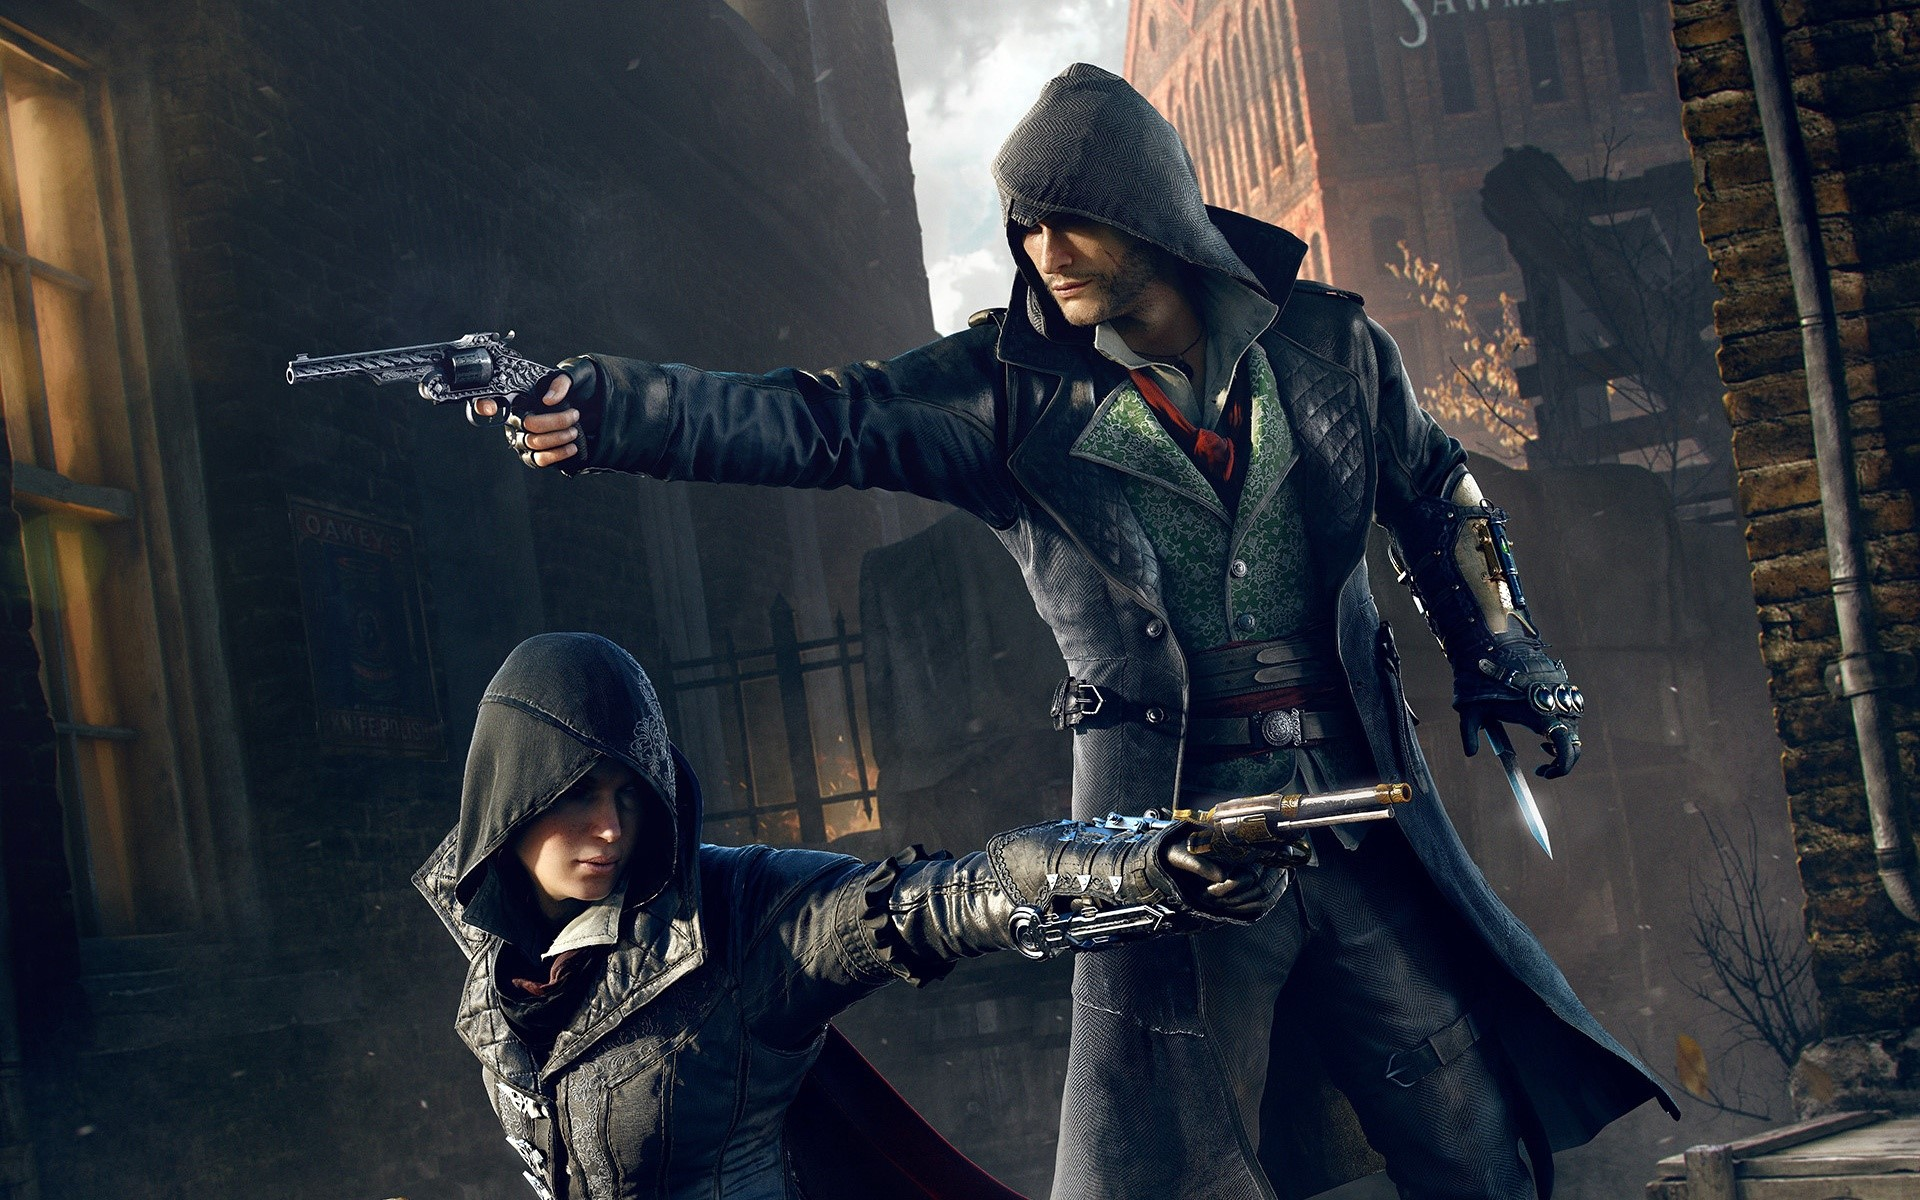 Fondos de pantalla Jacob and Evie Frye de Assassins Creed Syndicatte